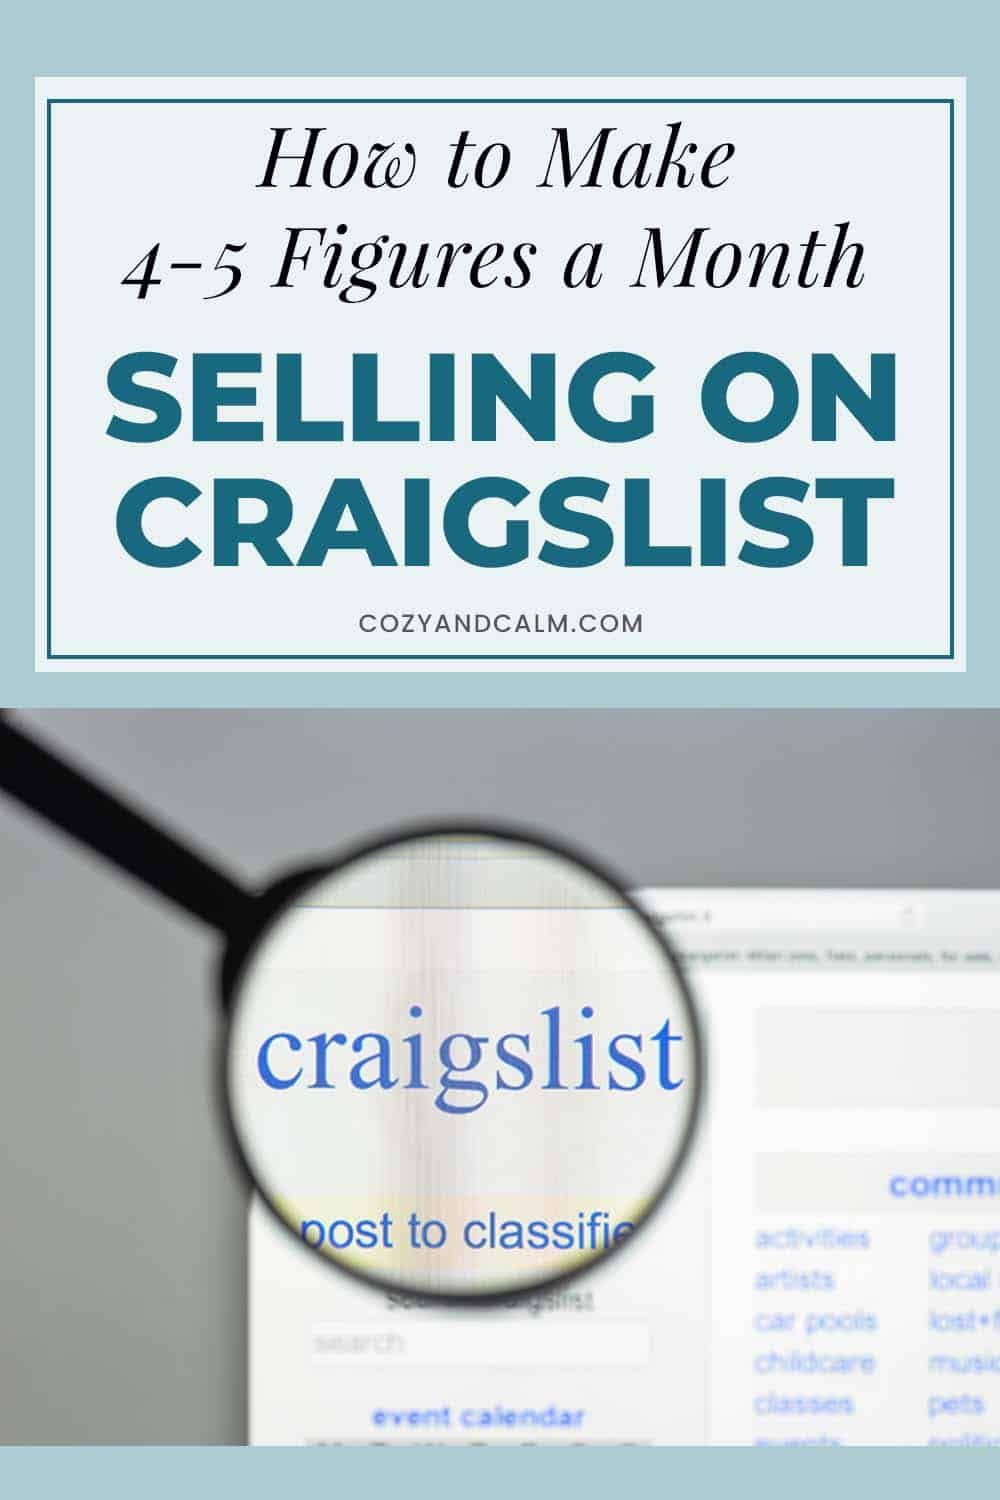 How To Sell On Craigslist 4 Ways To Bank 4 5 Figures A Month Selling On Craigslist Things To Sell Budget Help